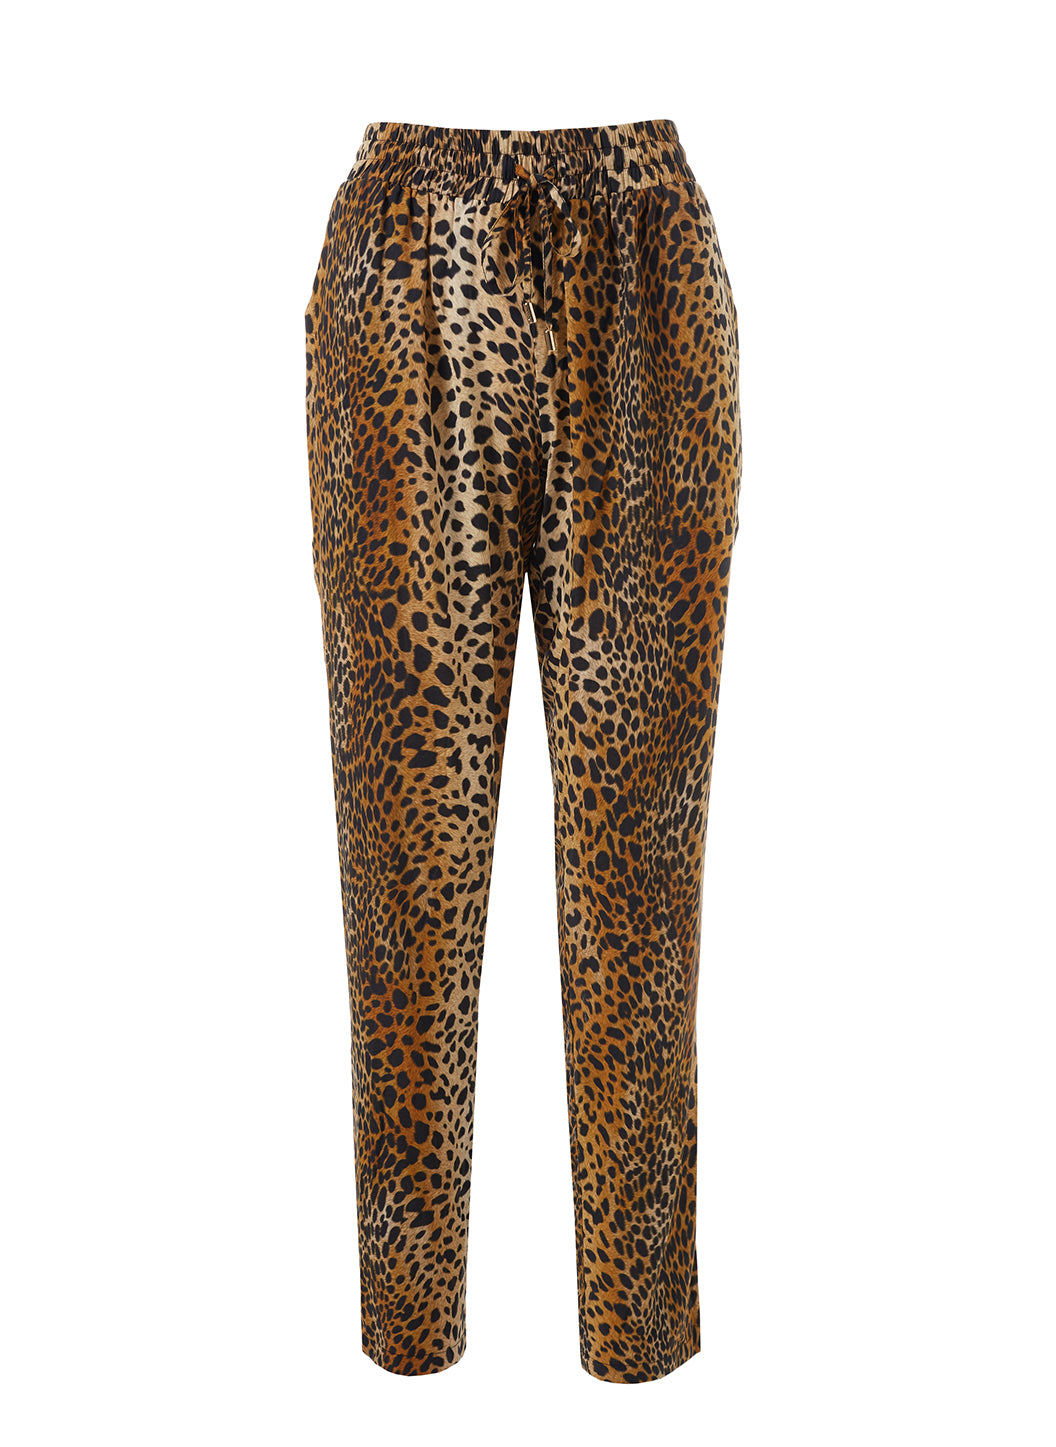 Jude Cheetah Print Trousers